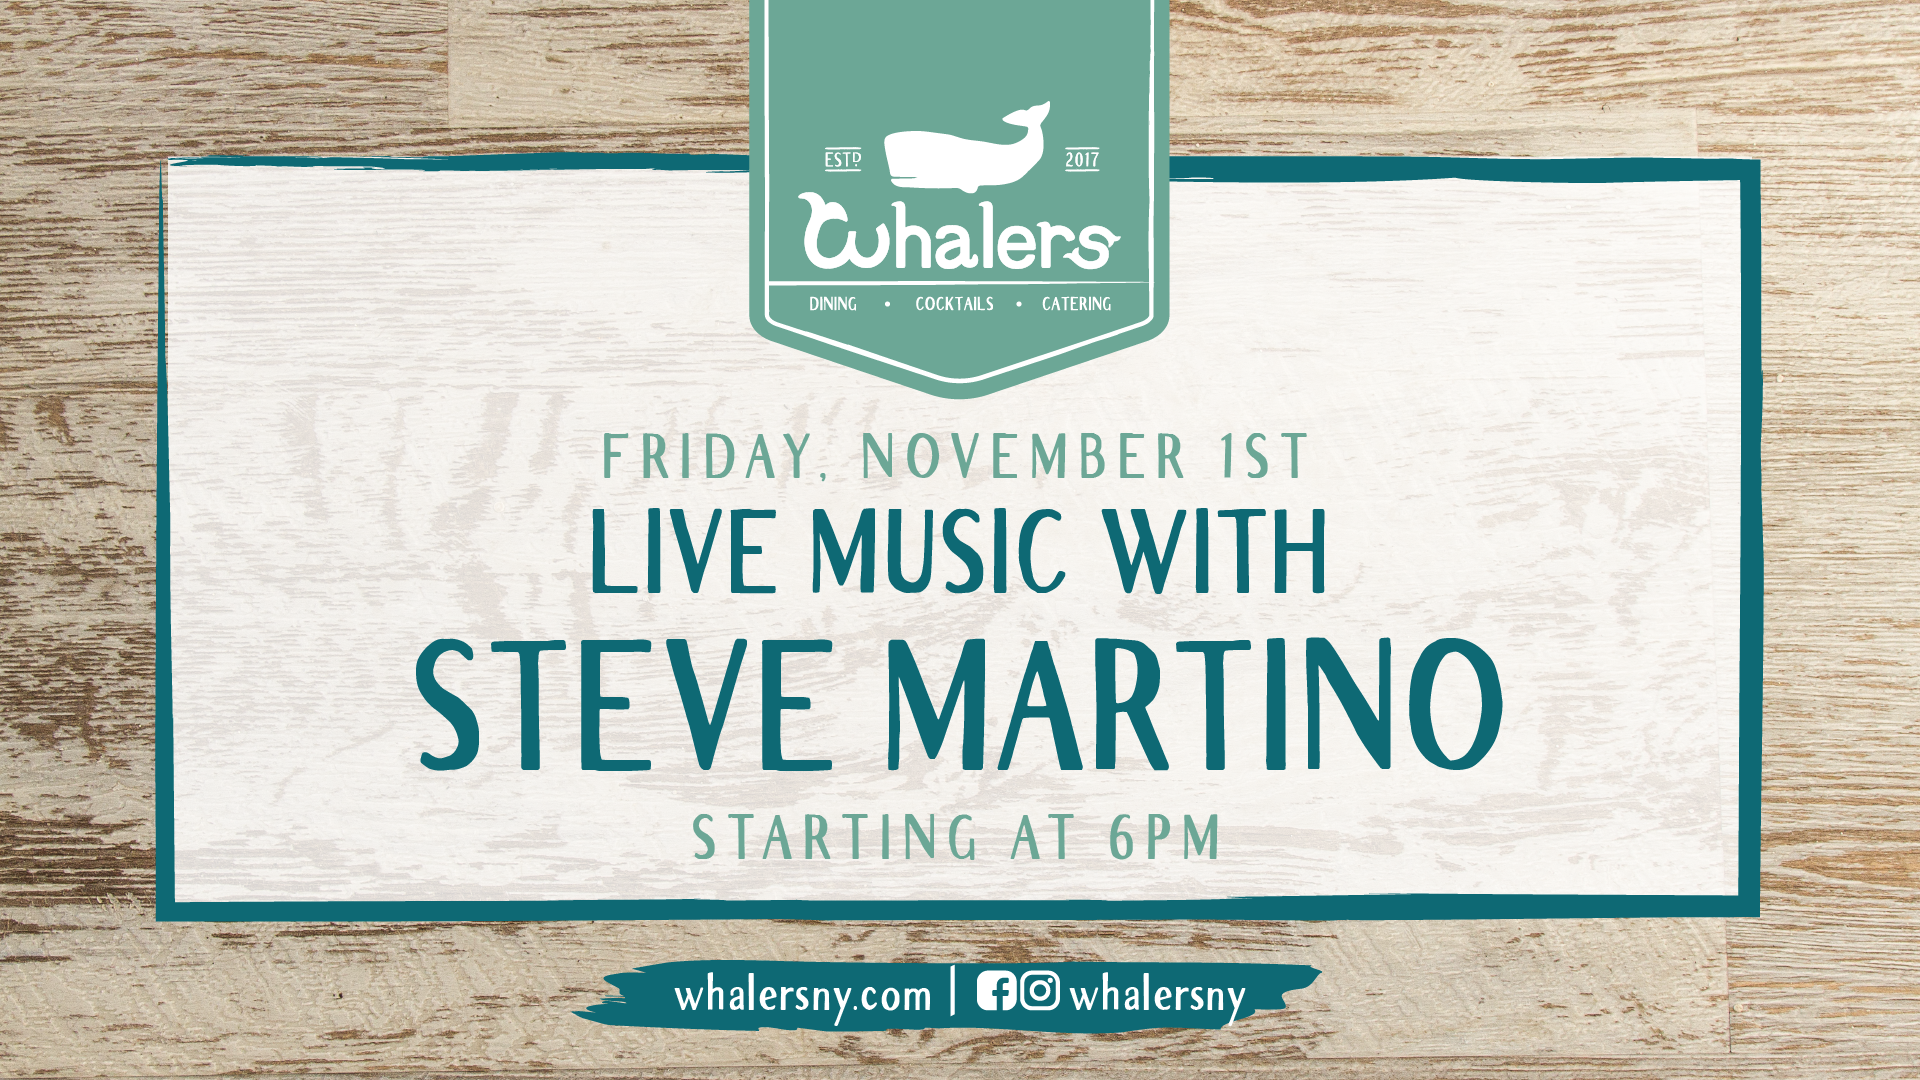 Flyer for live music with Steve Martino on Friday, November 1st starting at 6pm